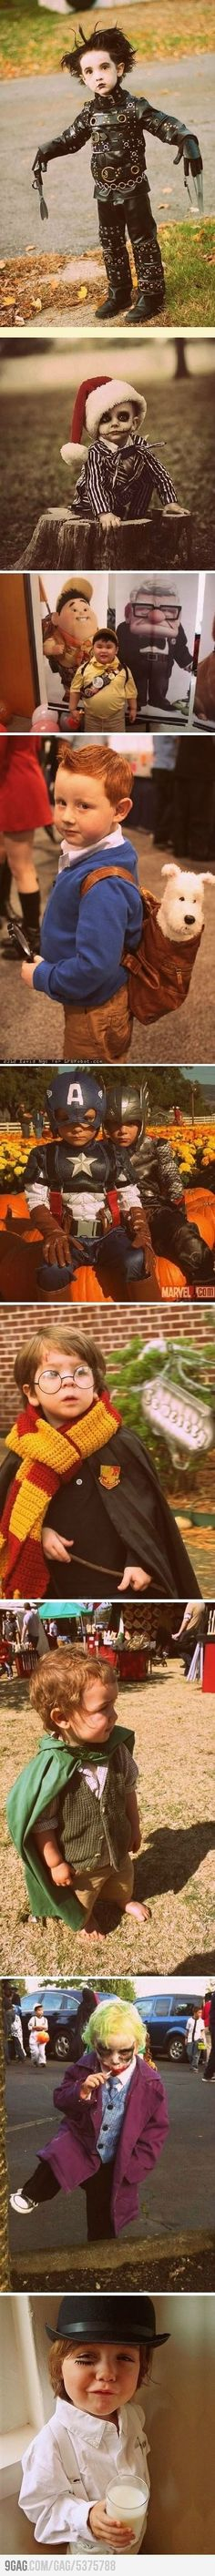 Children imitating famous movie characters